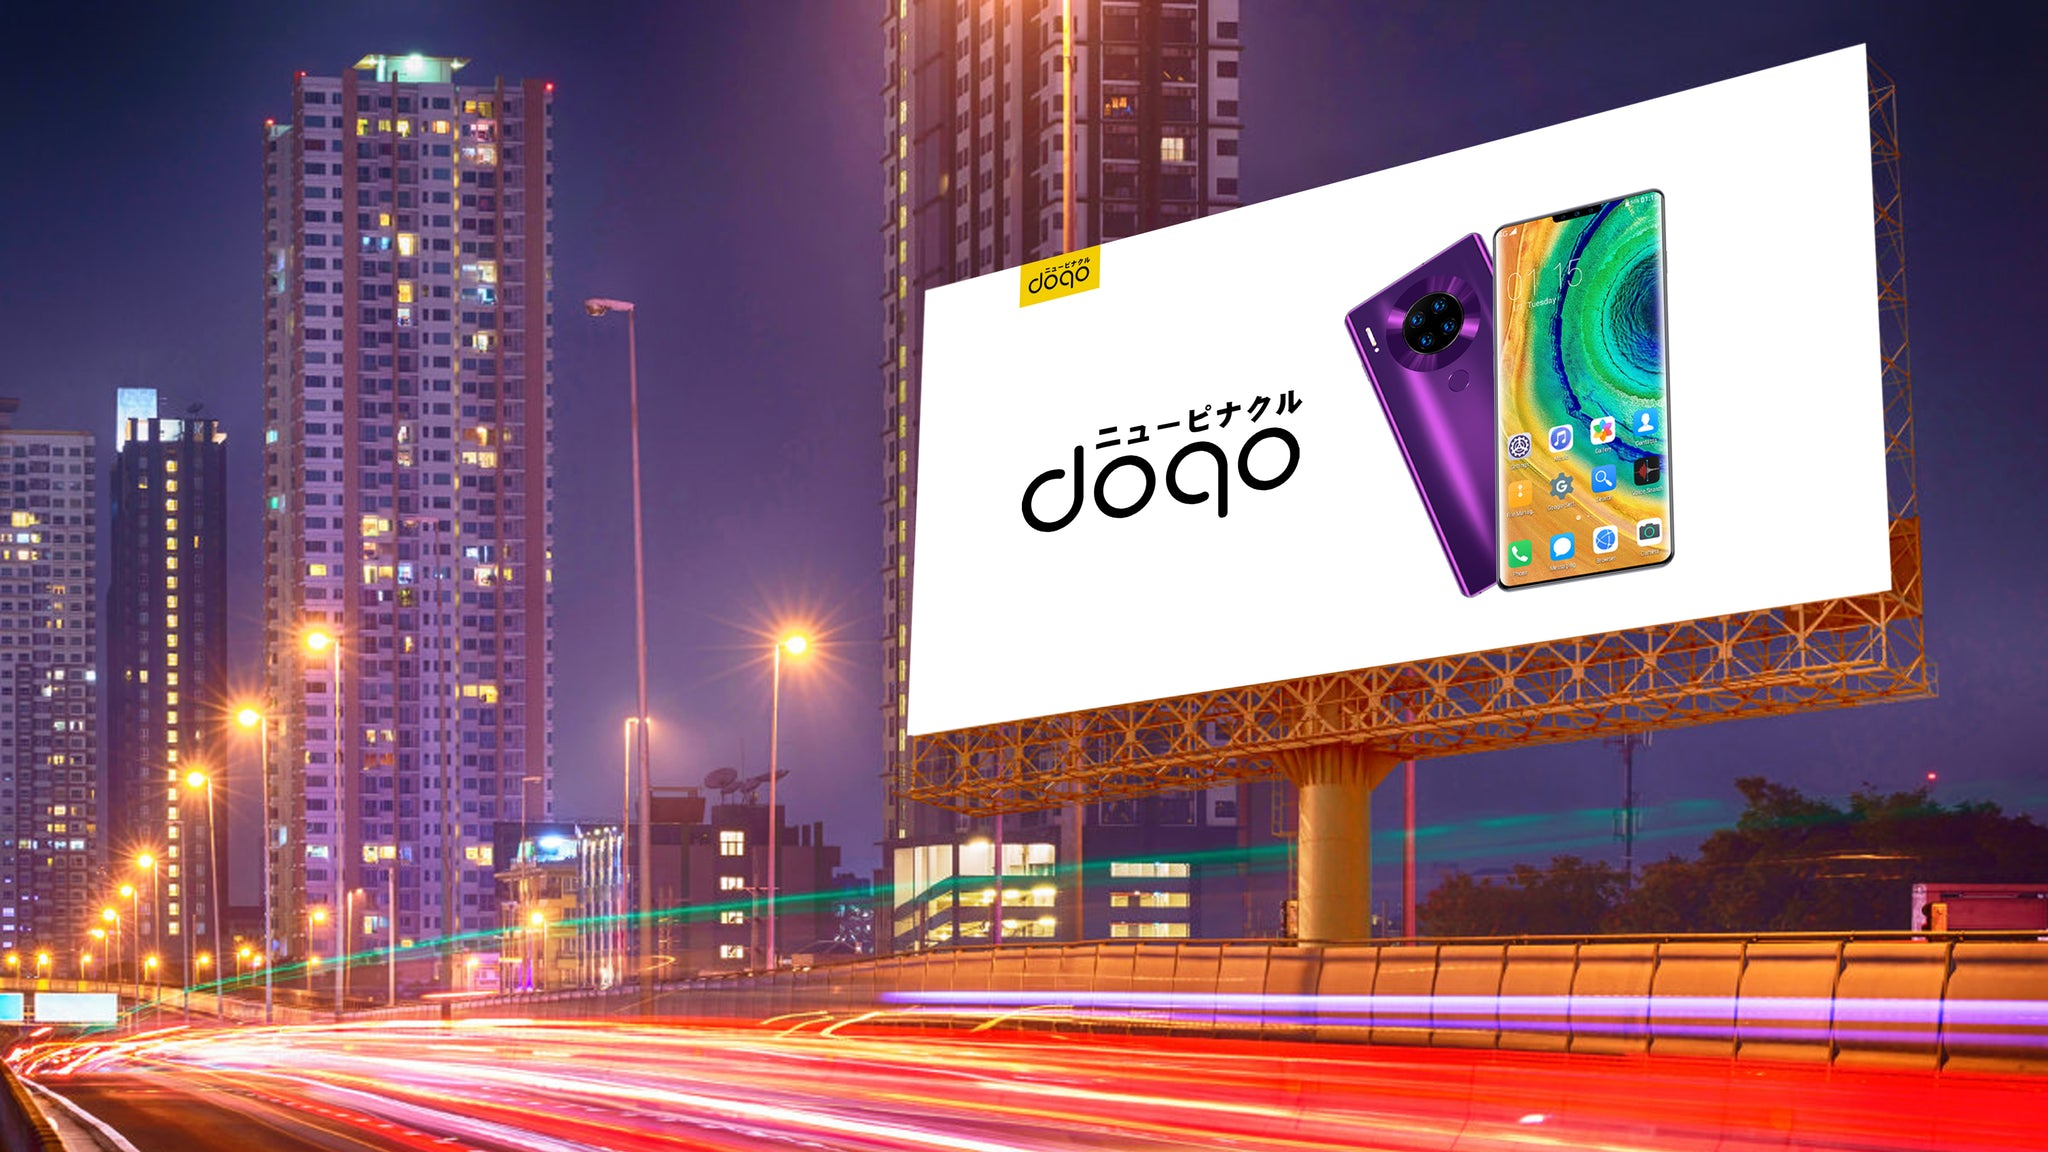 Doqo mobile phone was sold out in Japan for 1 minute